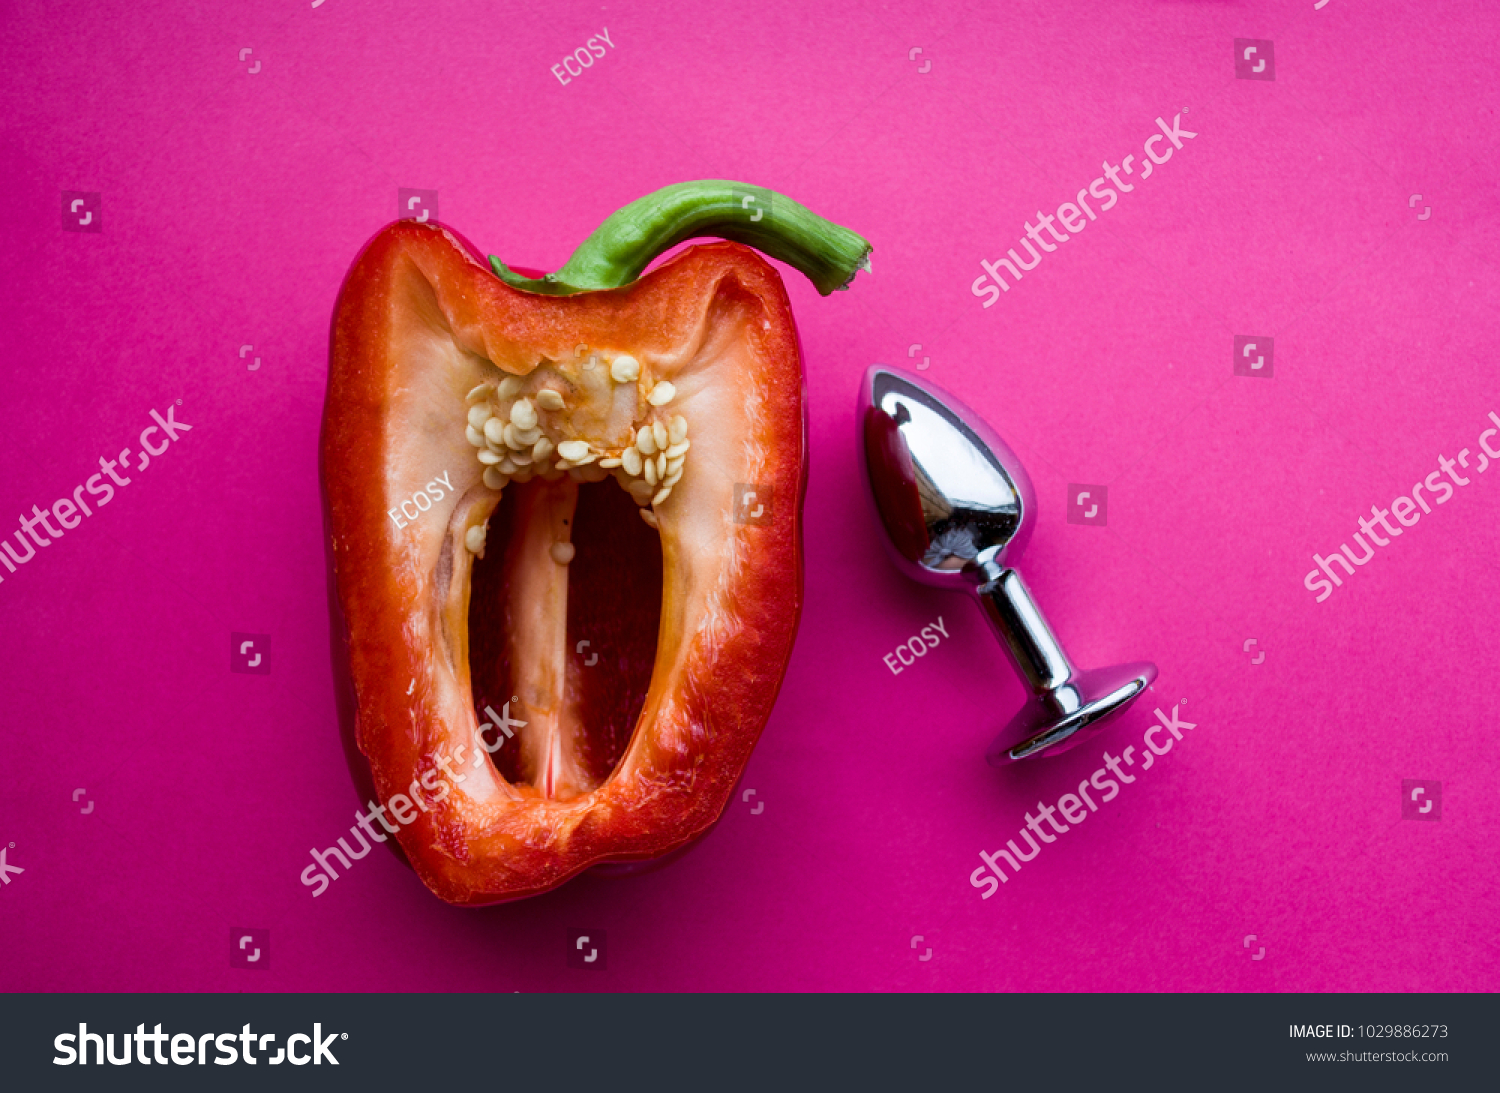 vagina symbol-sweet red pepper and anal steel plug on a pink background.  Concept